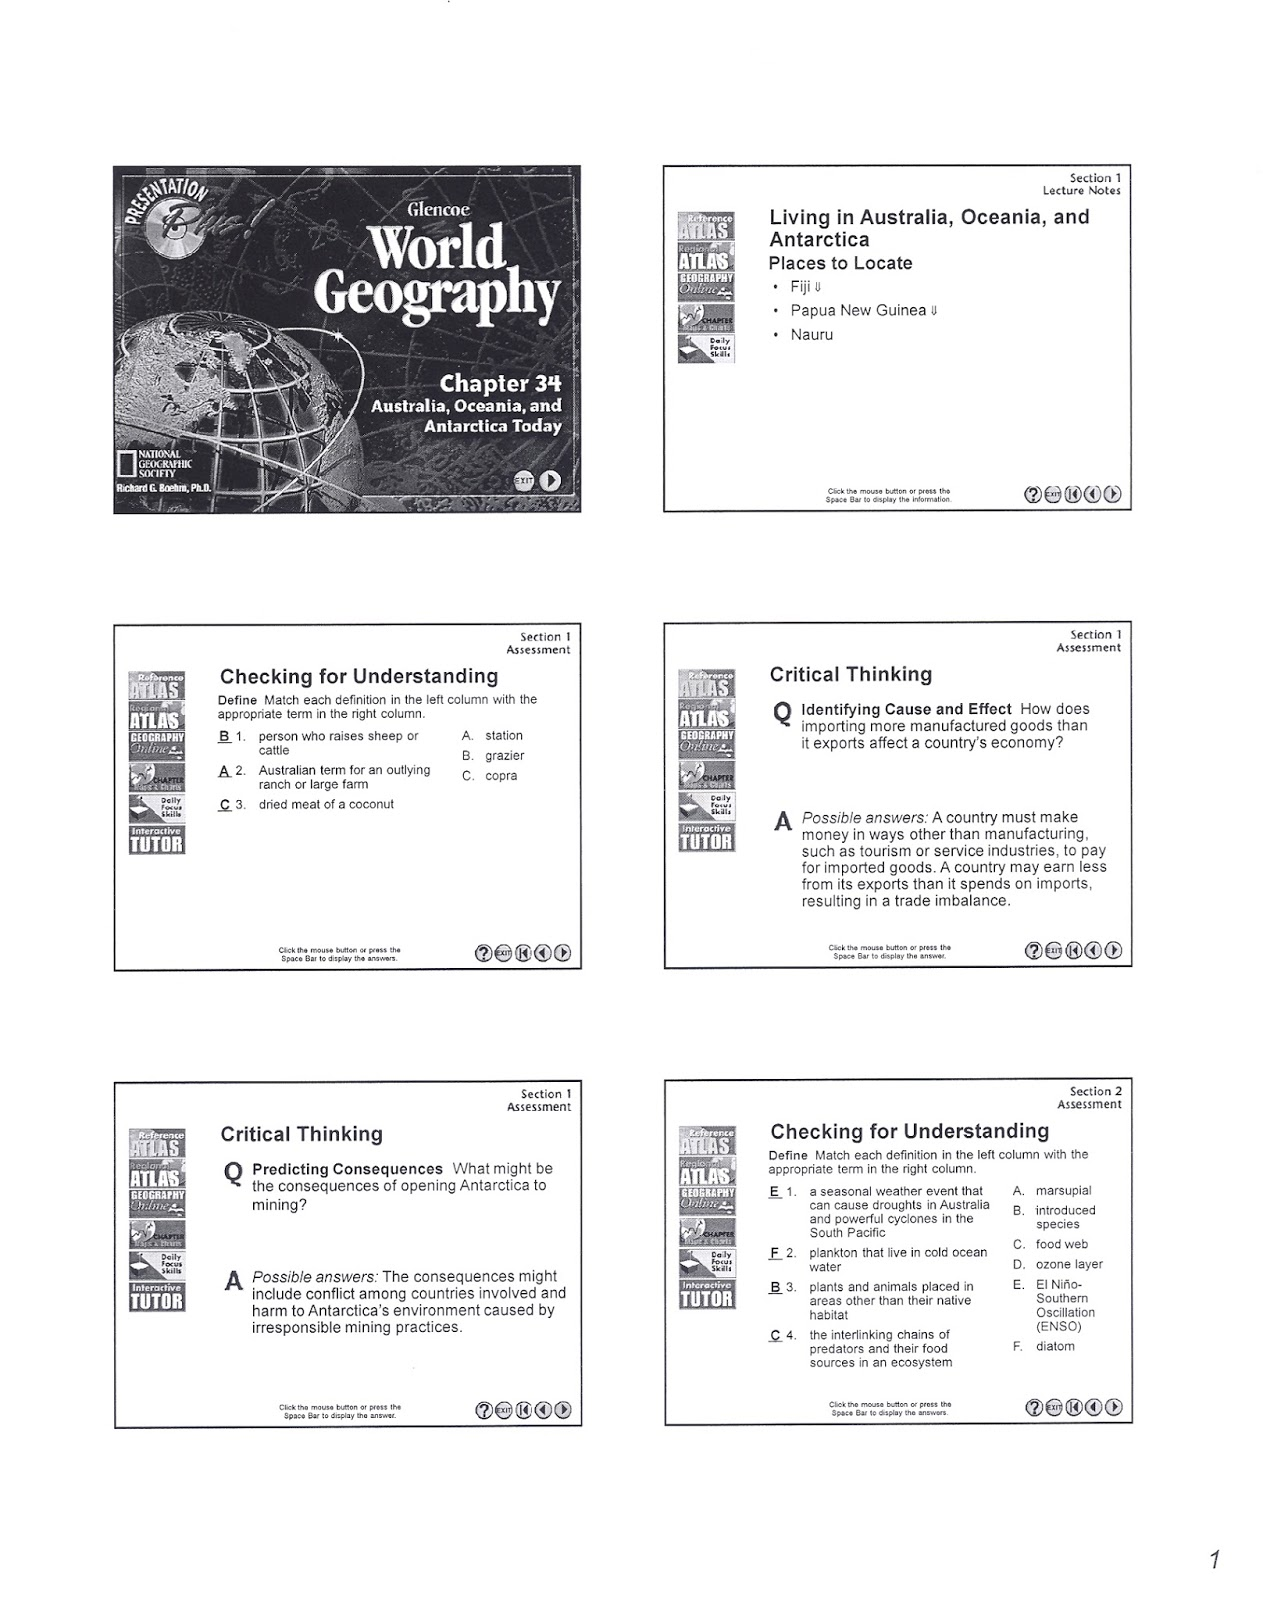 this post only shows the classwork sheet and chapter 34 powerpoint notes